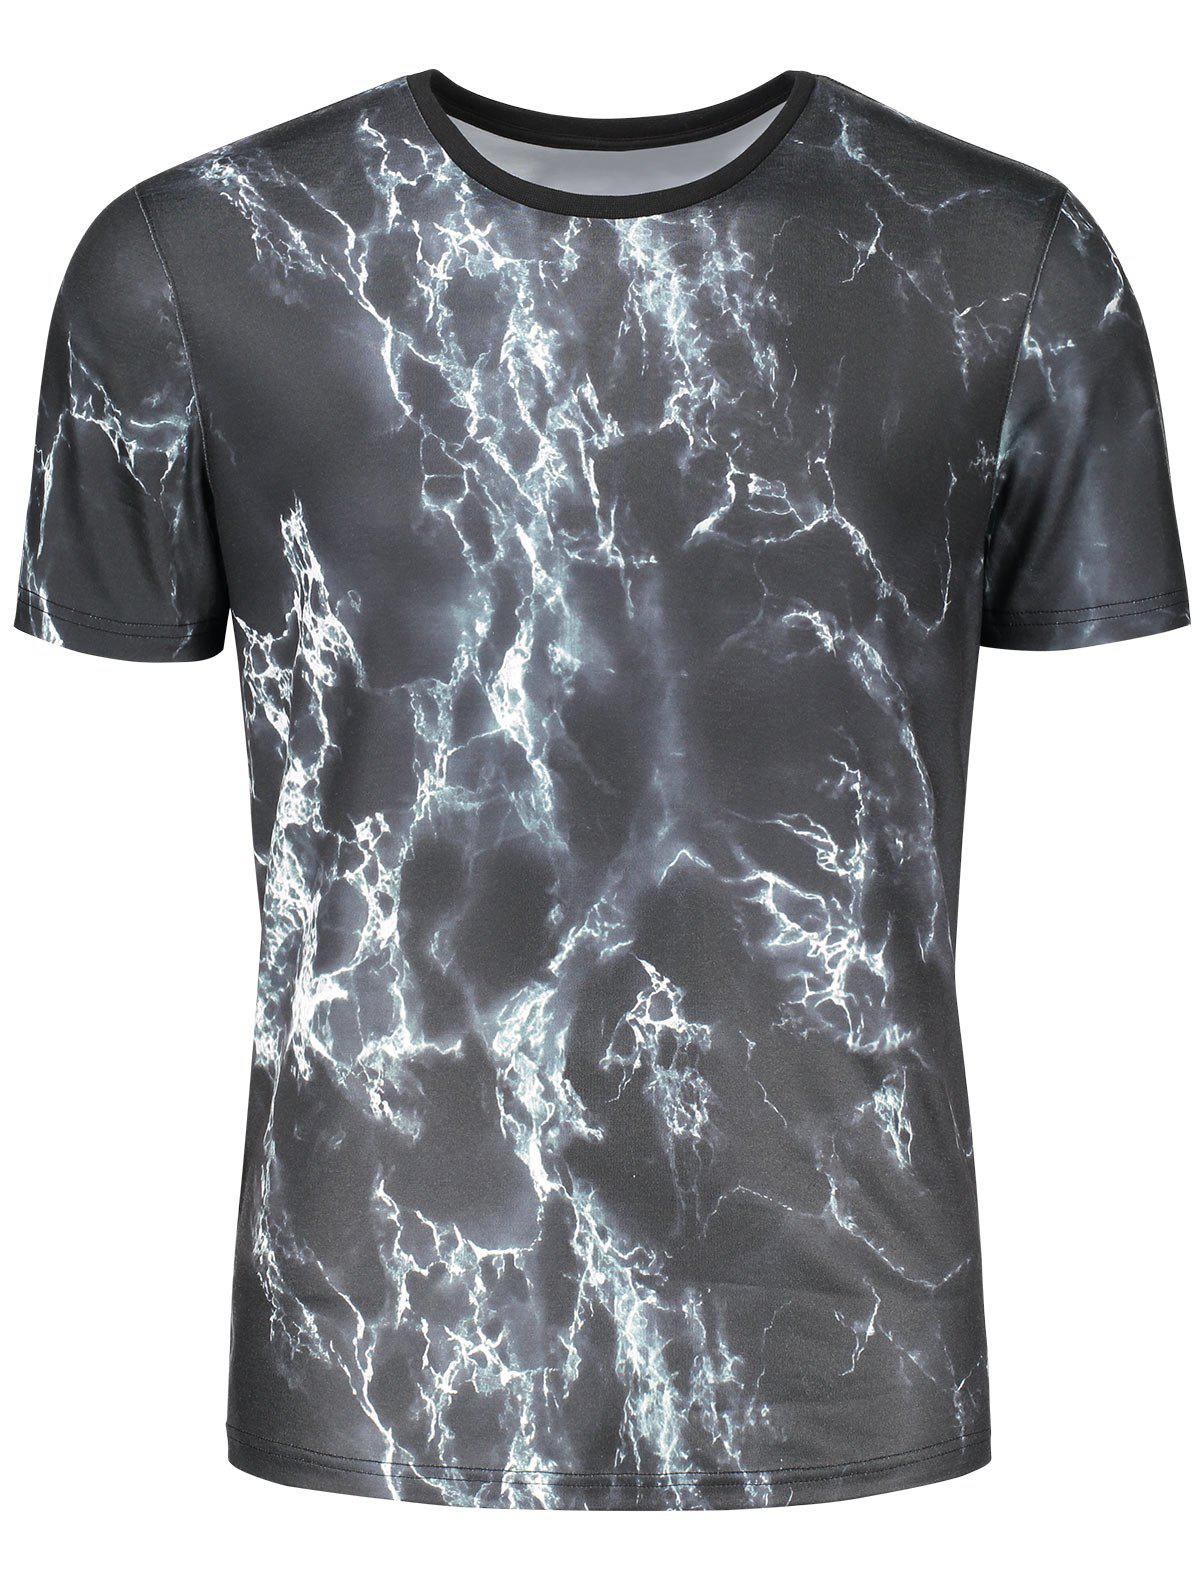 T-shirt à manches courtes 3D Lightning Print - multicolorcolore L